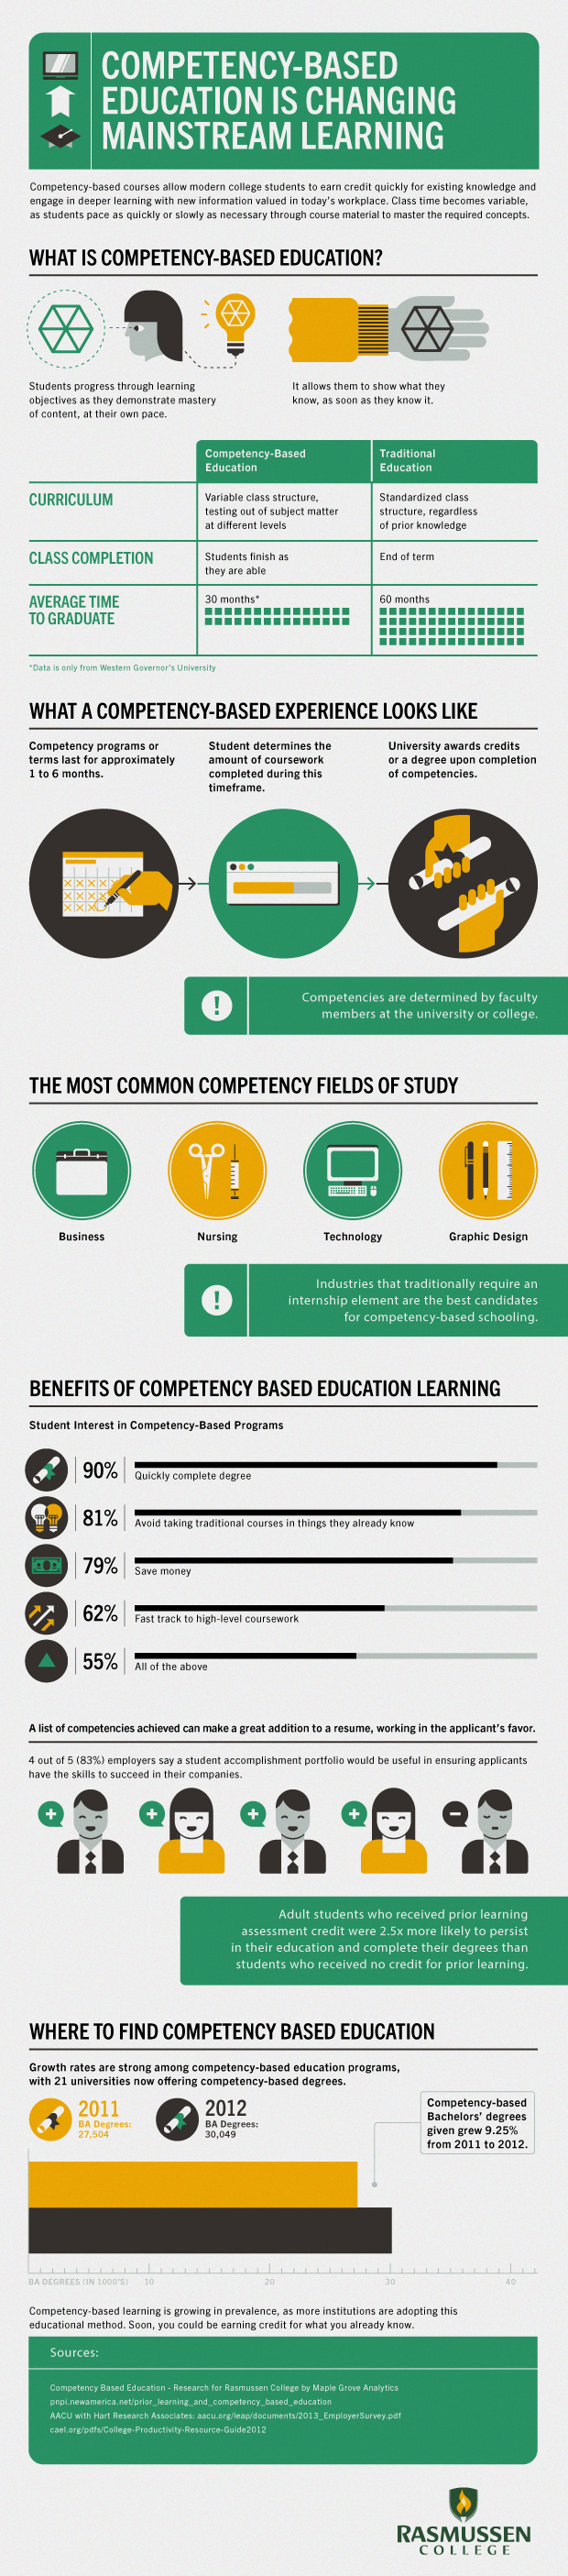 How Competency-Based Education is Changing Mainstream Learning Infographic…